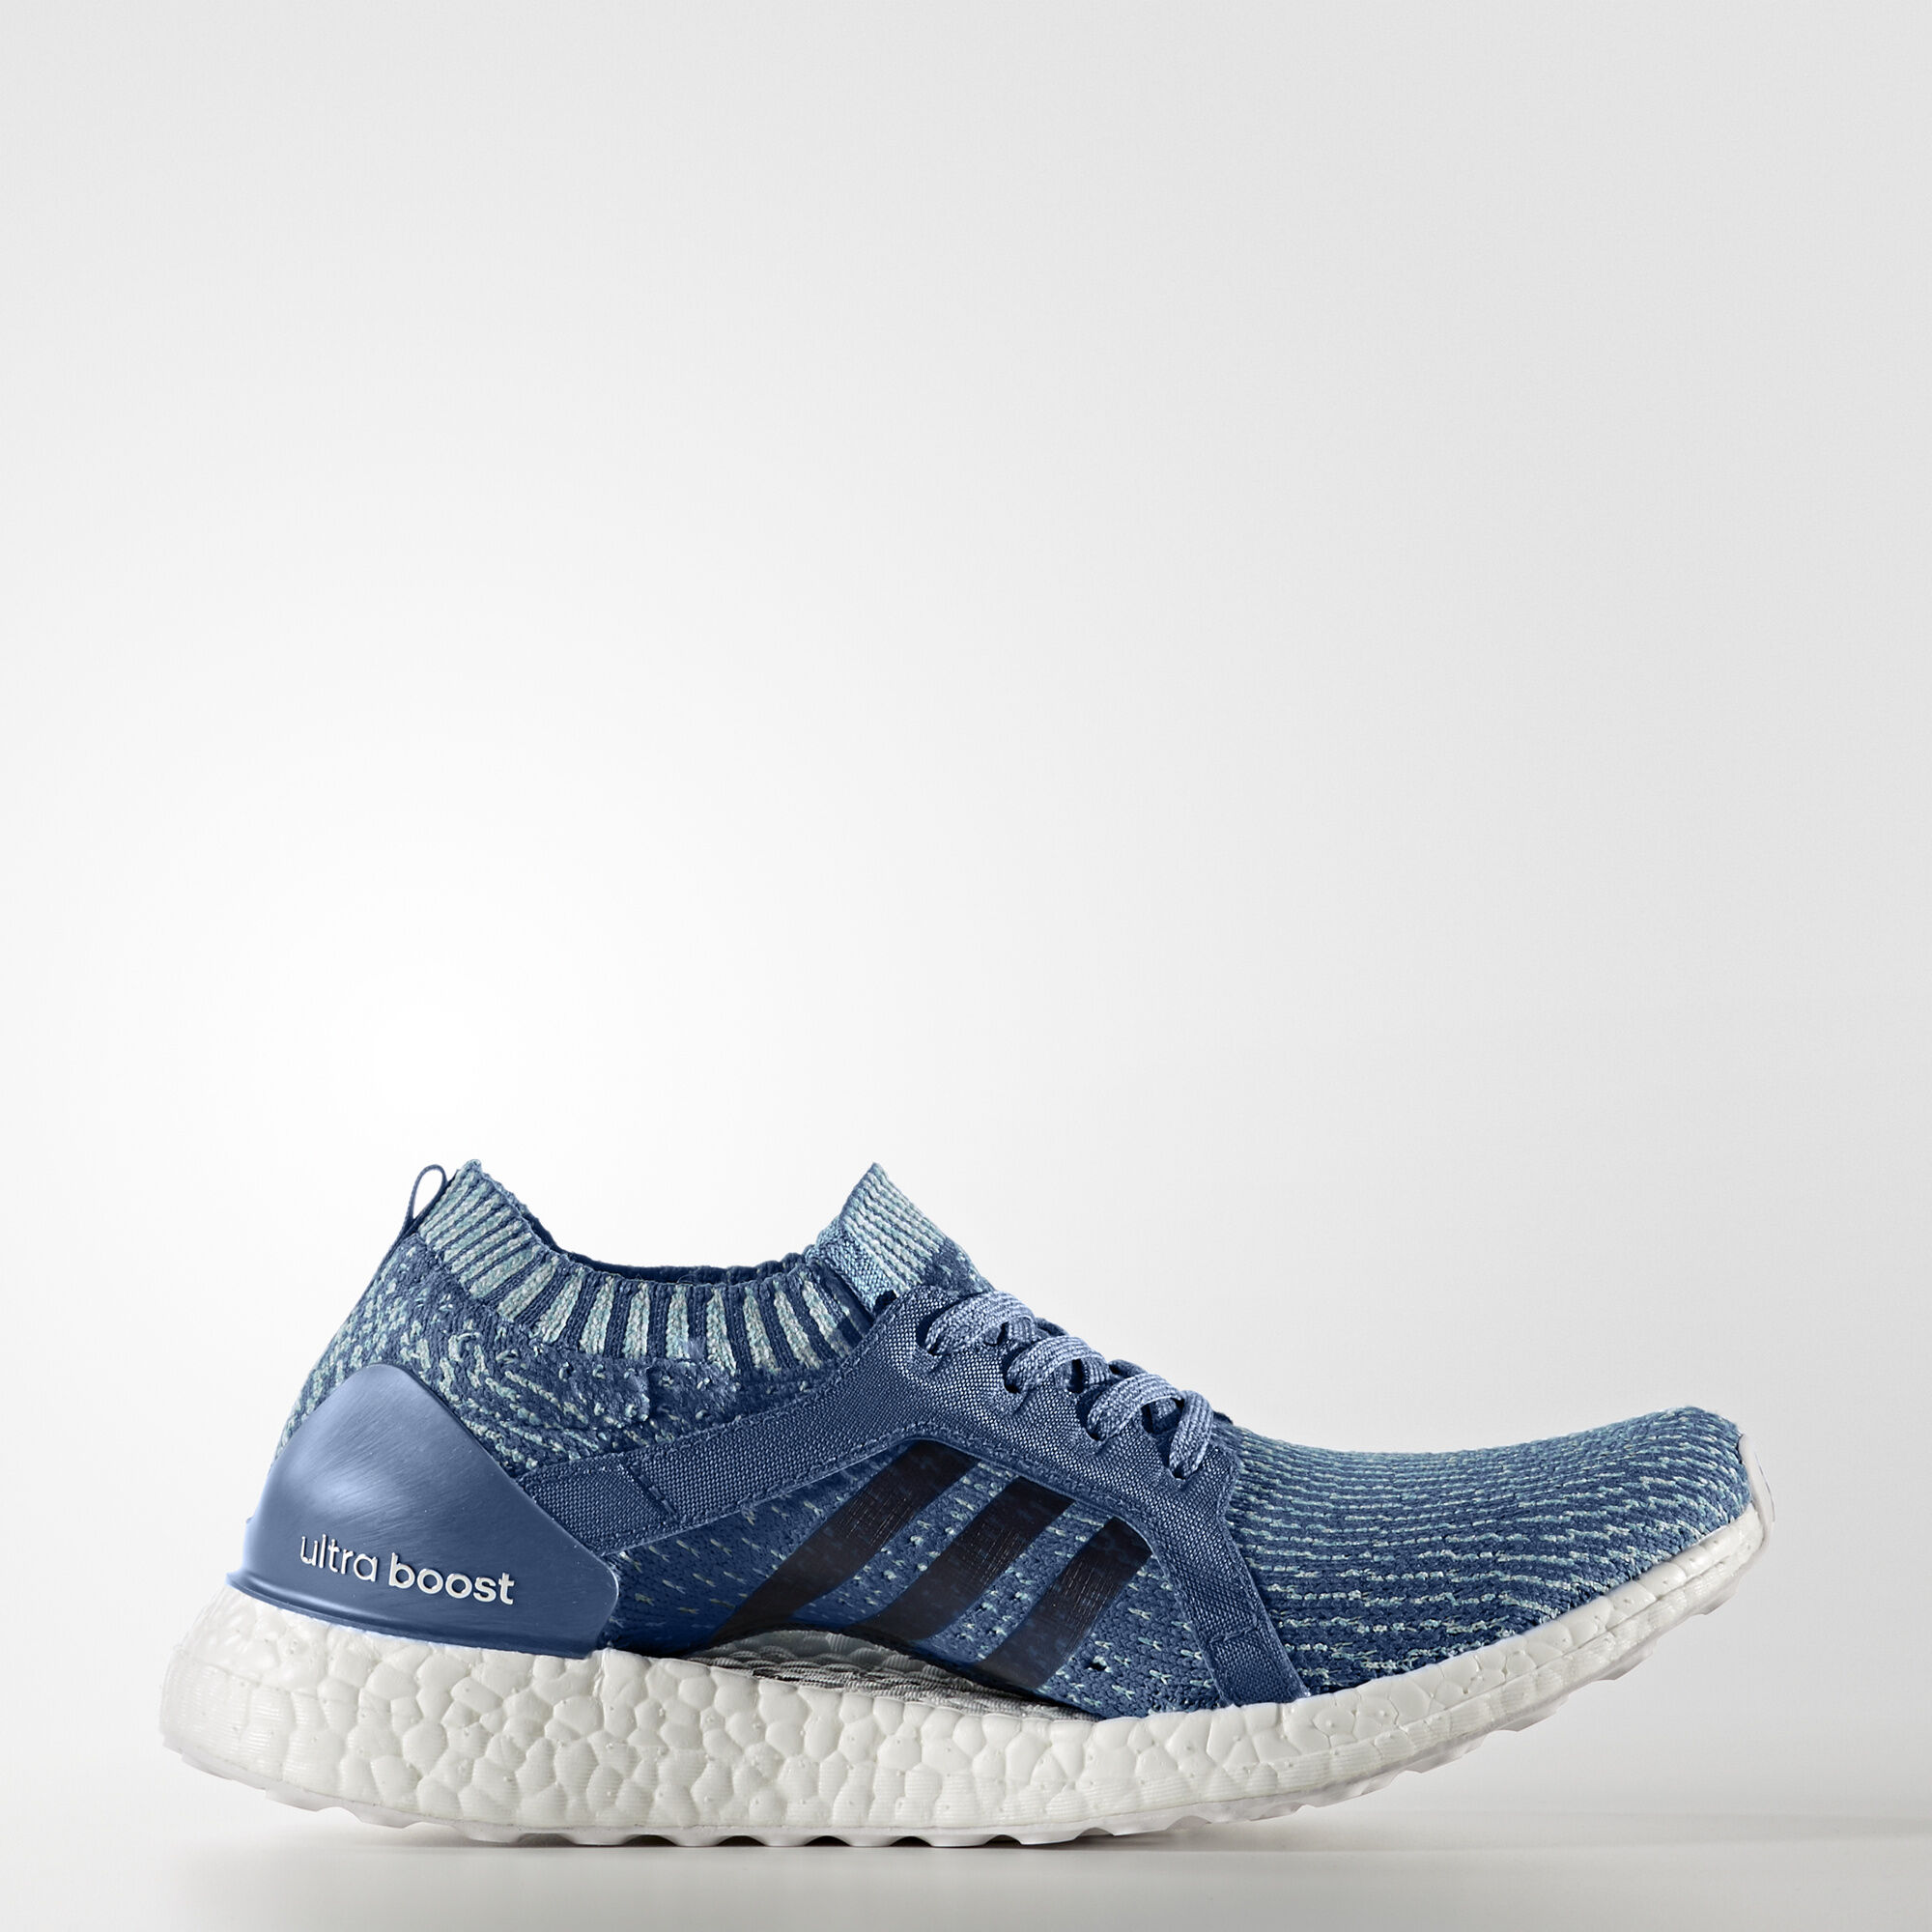 finest selection 48a12 b6e5a ... adidas Ultraboost Running Shoes   adidas US ...